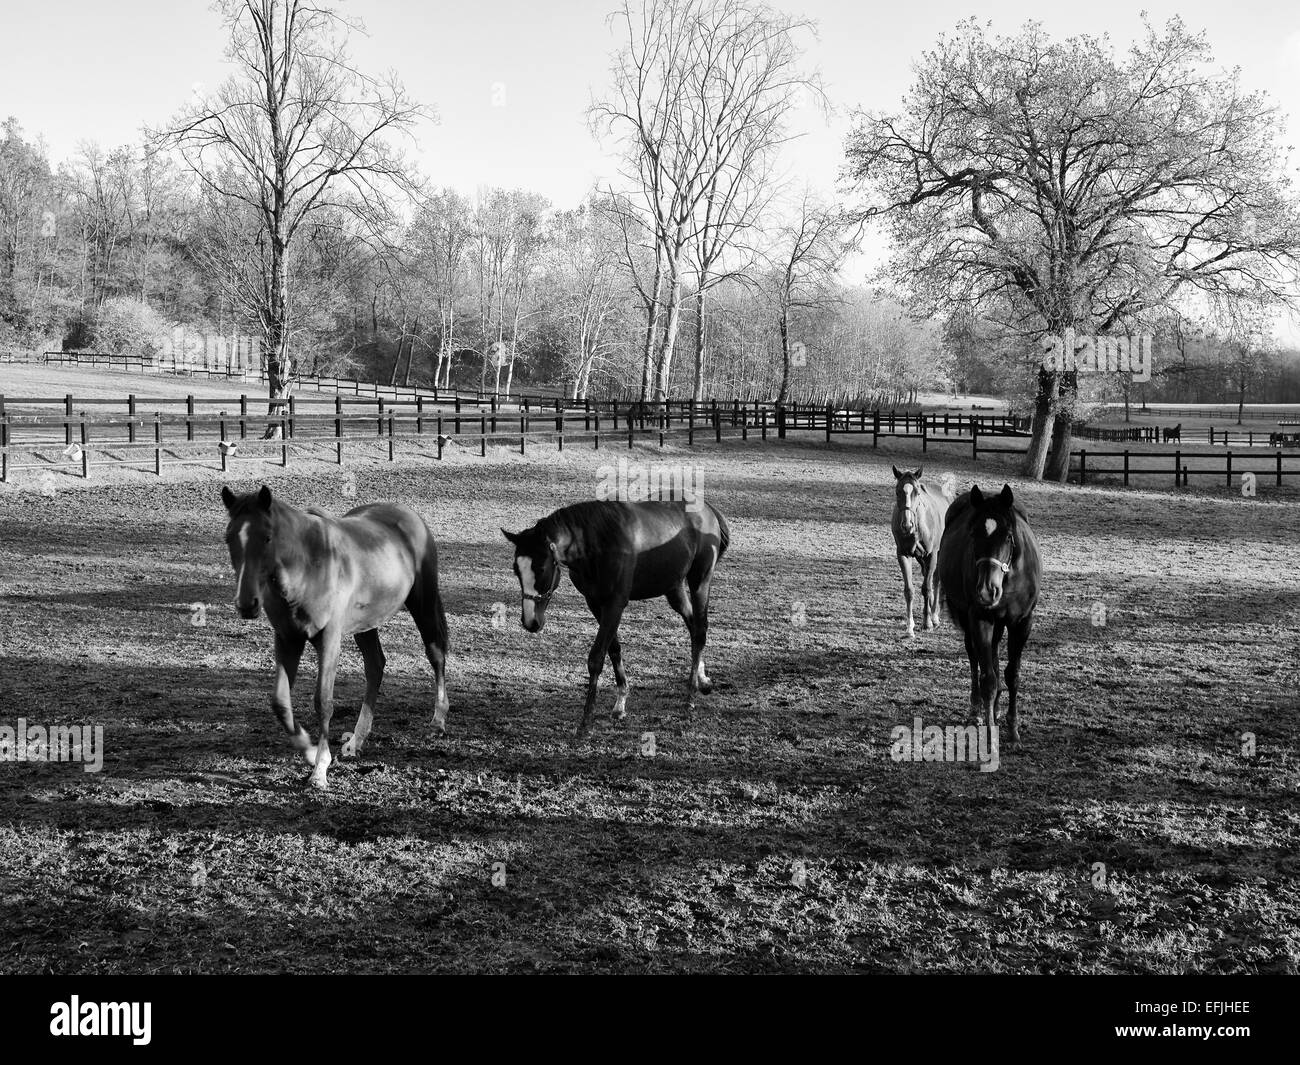 Horses walking on paddock - Stock Image